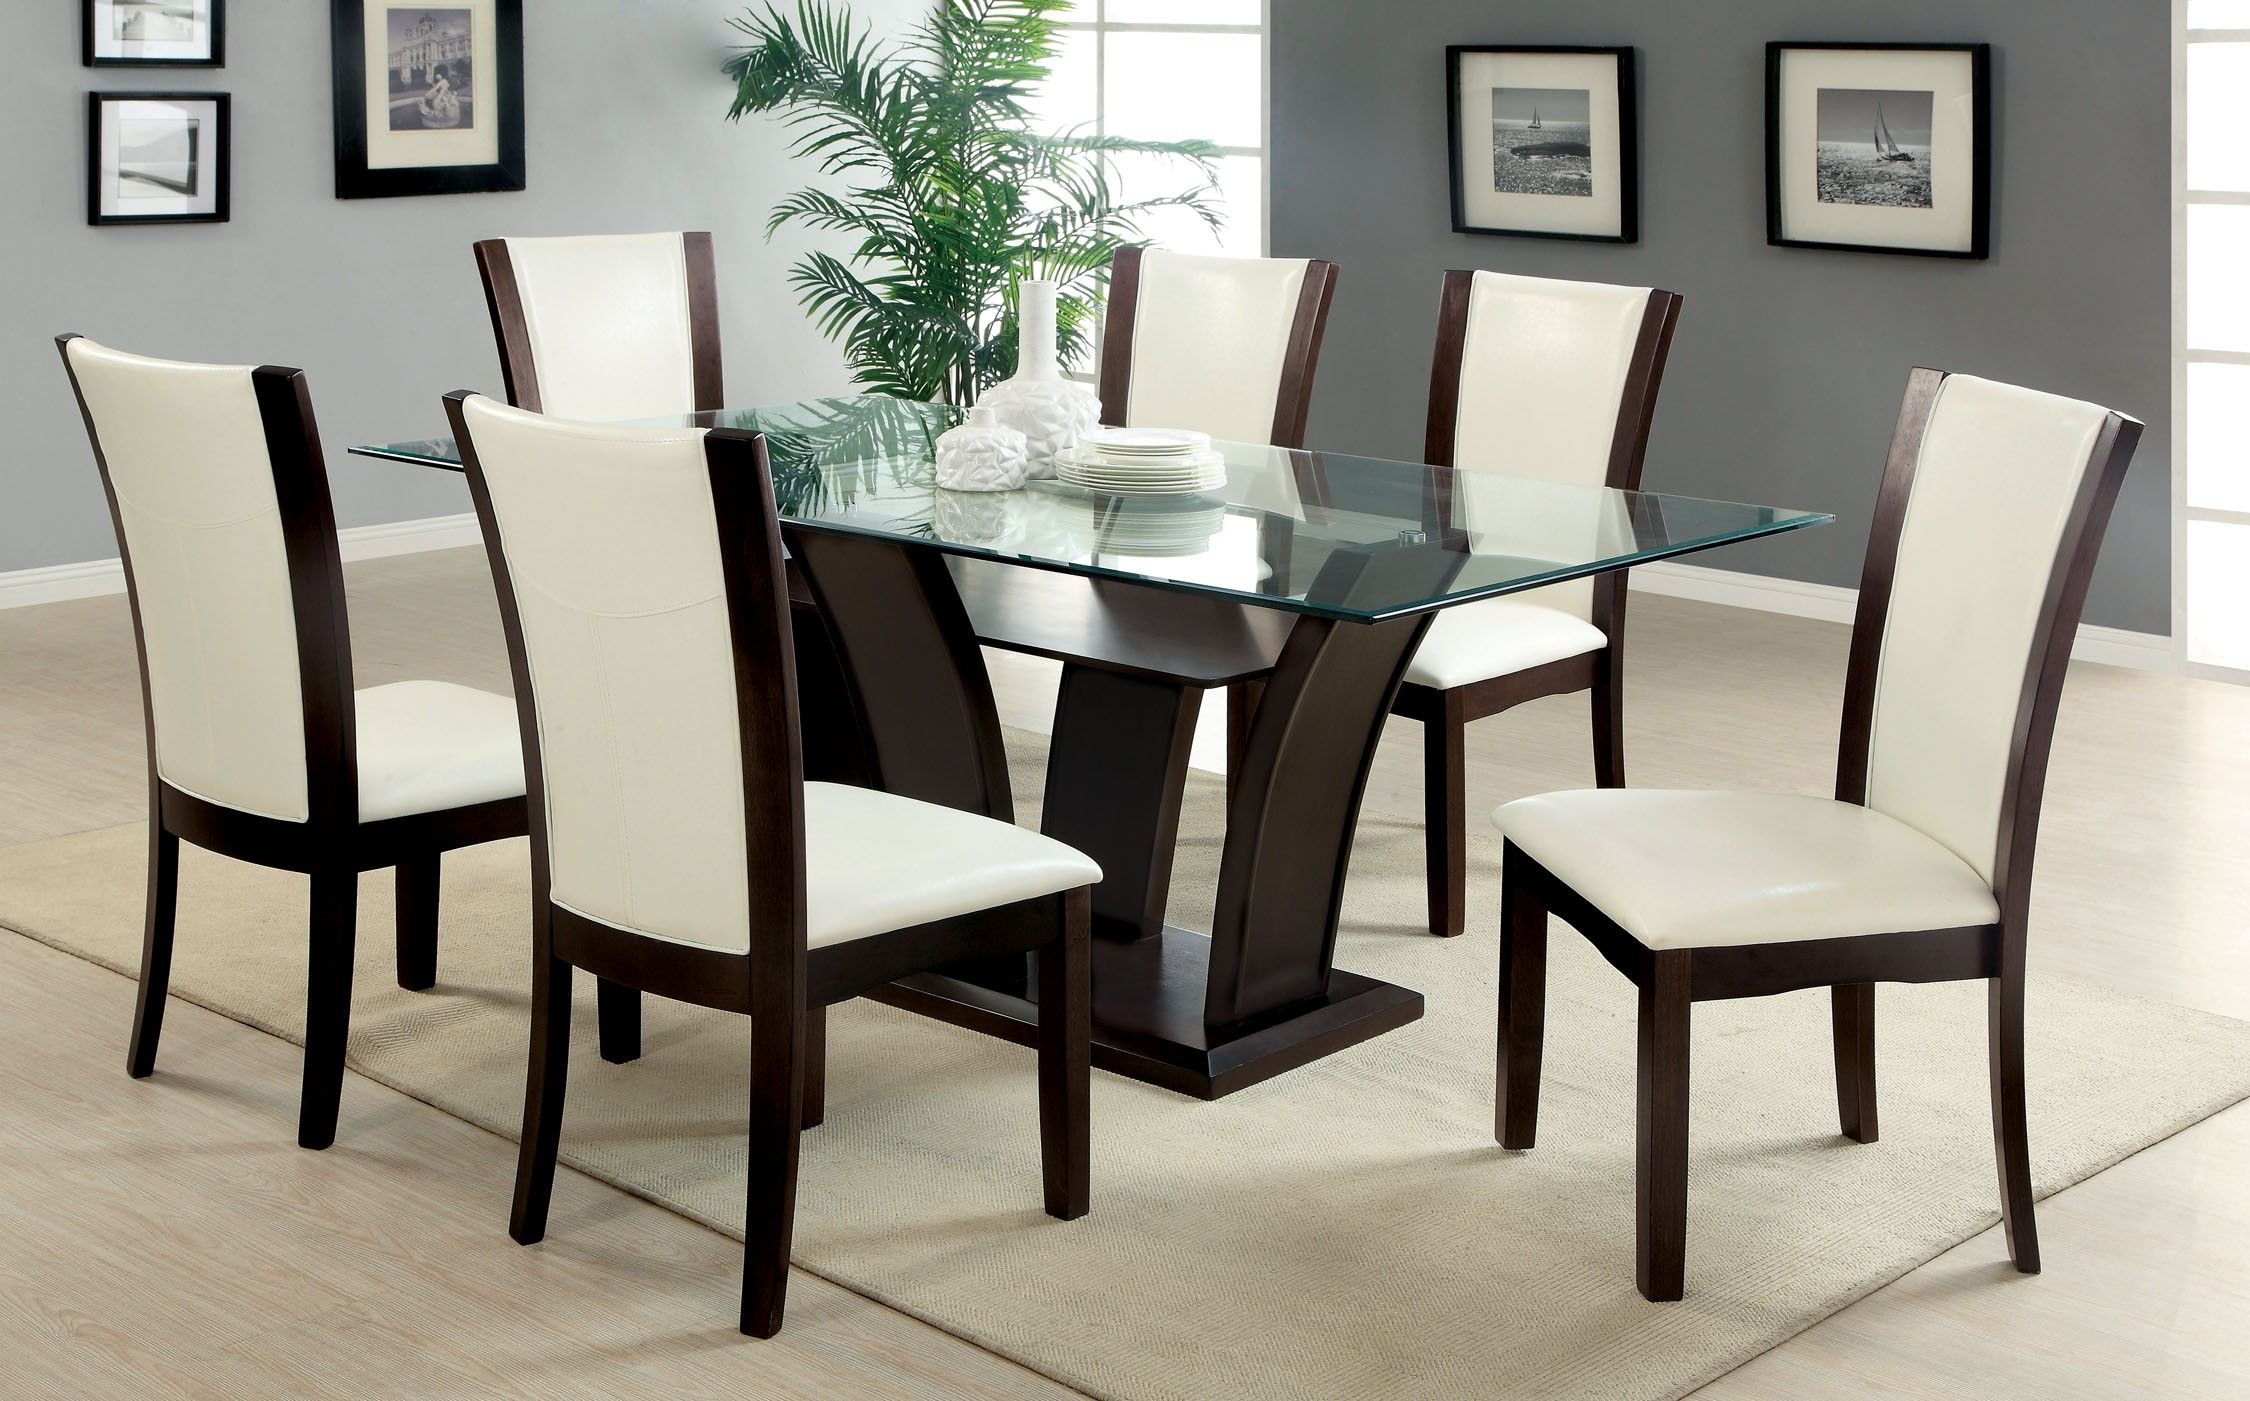 Glass Dining Table Set 6 Chairs Glass Dining Room Table Interior Design Dining Room Modern Dining Room